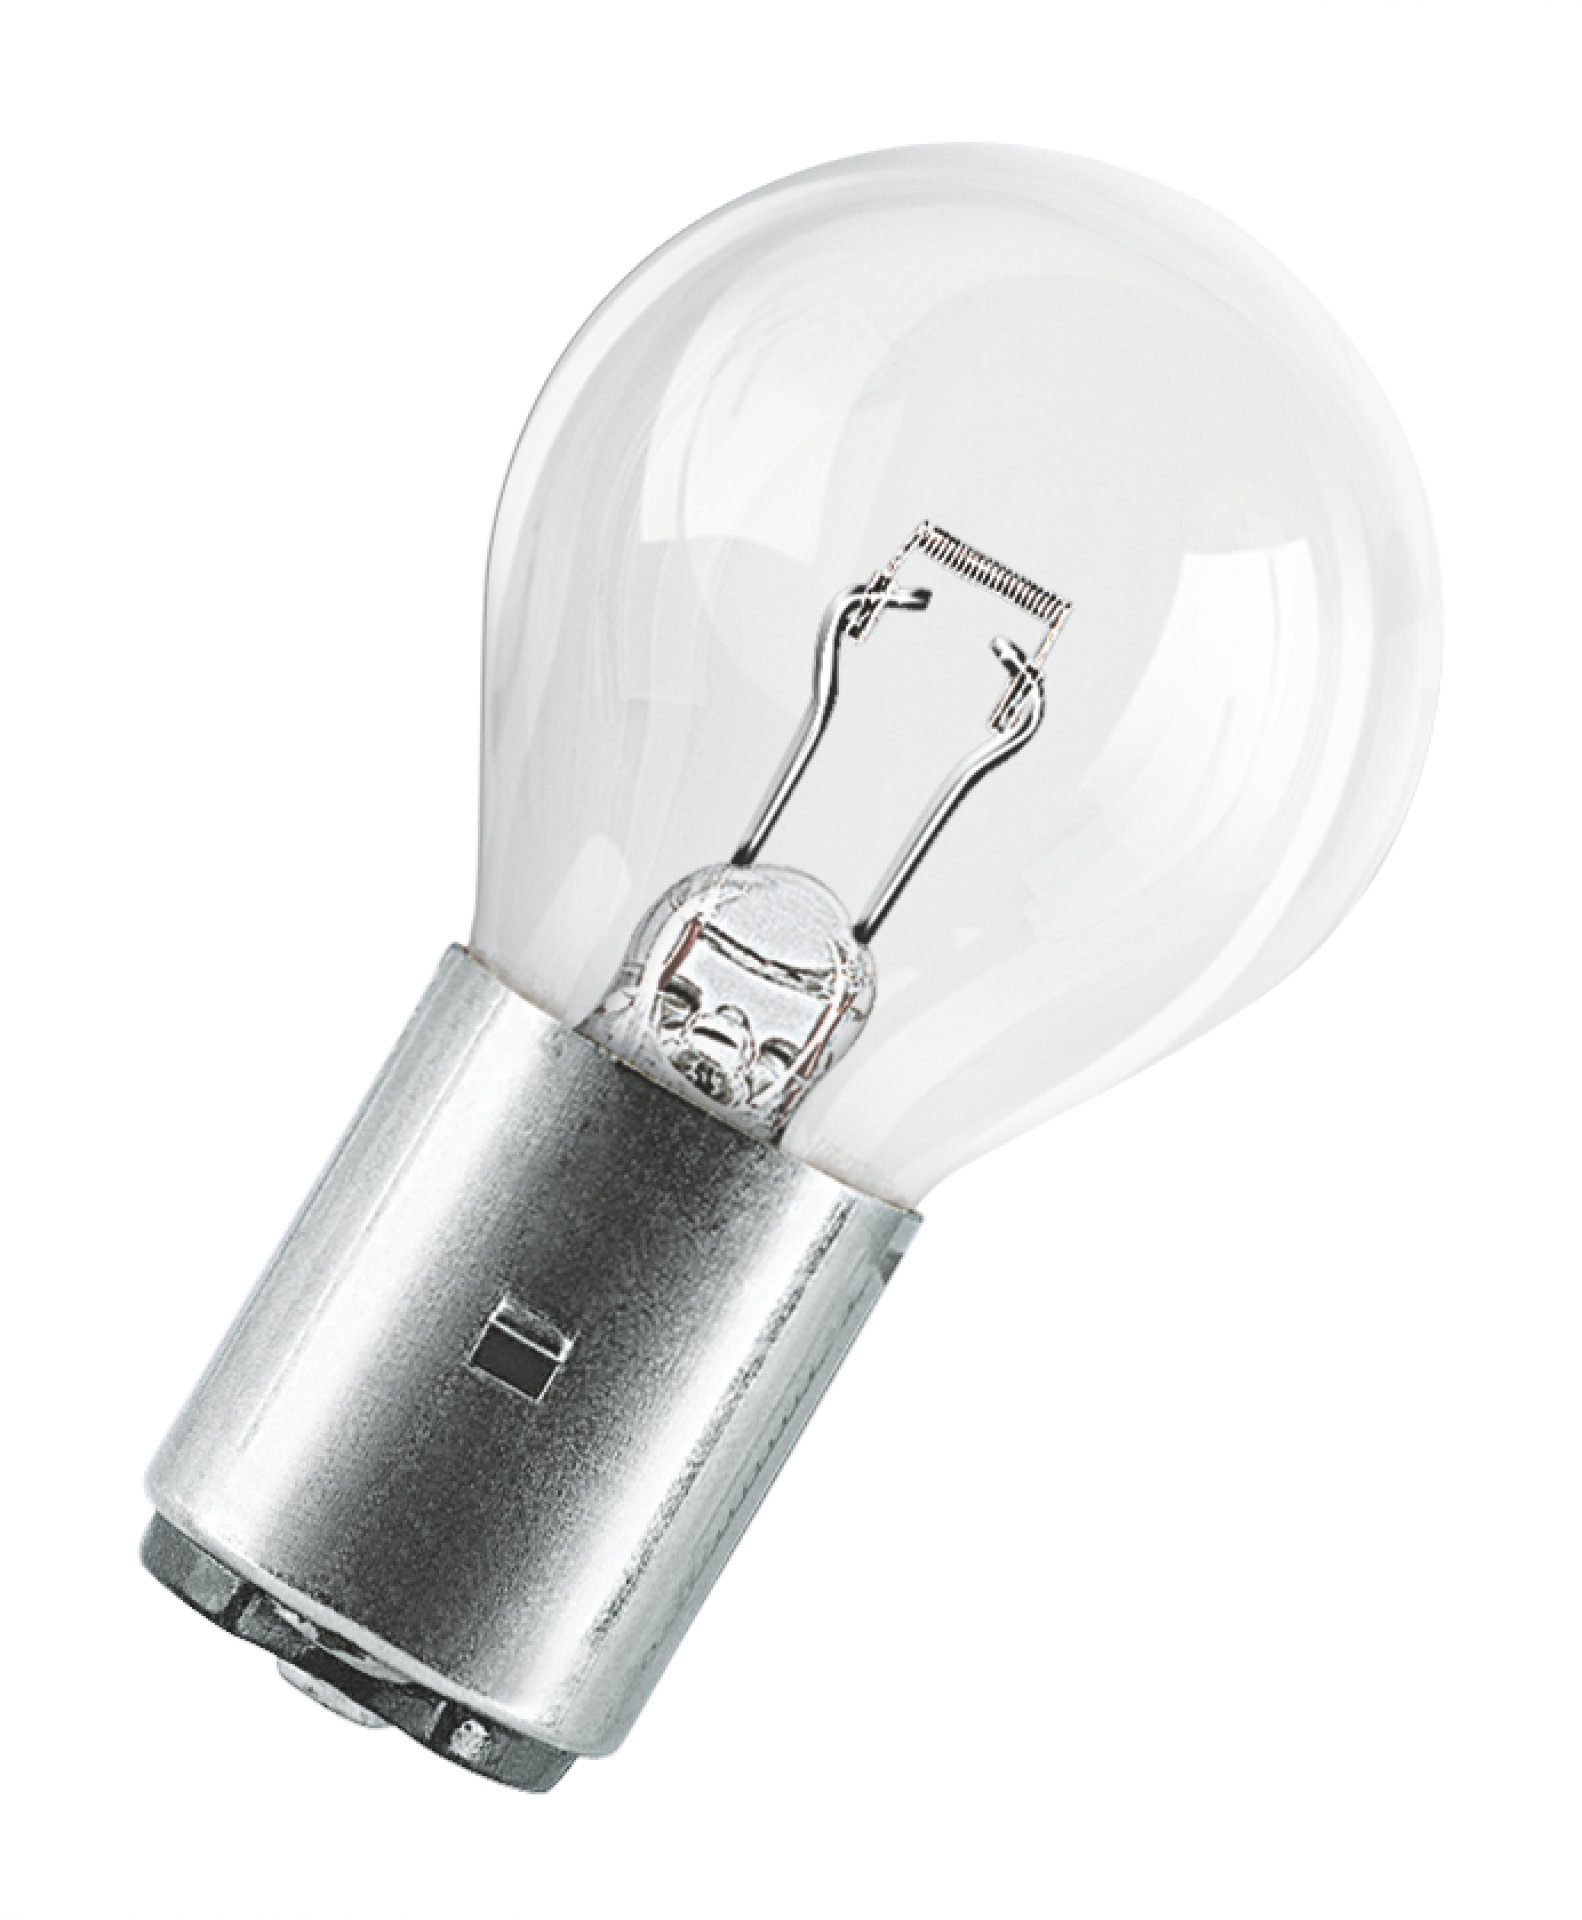 Low-voltage over-pressure lamps for 10V systems, road traffic